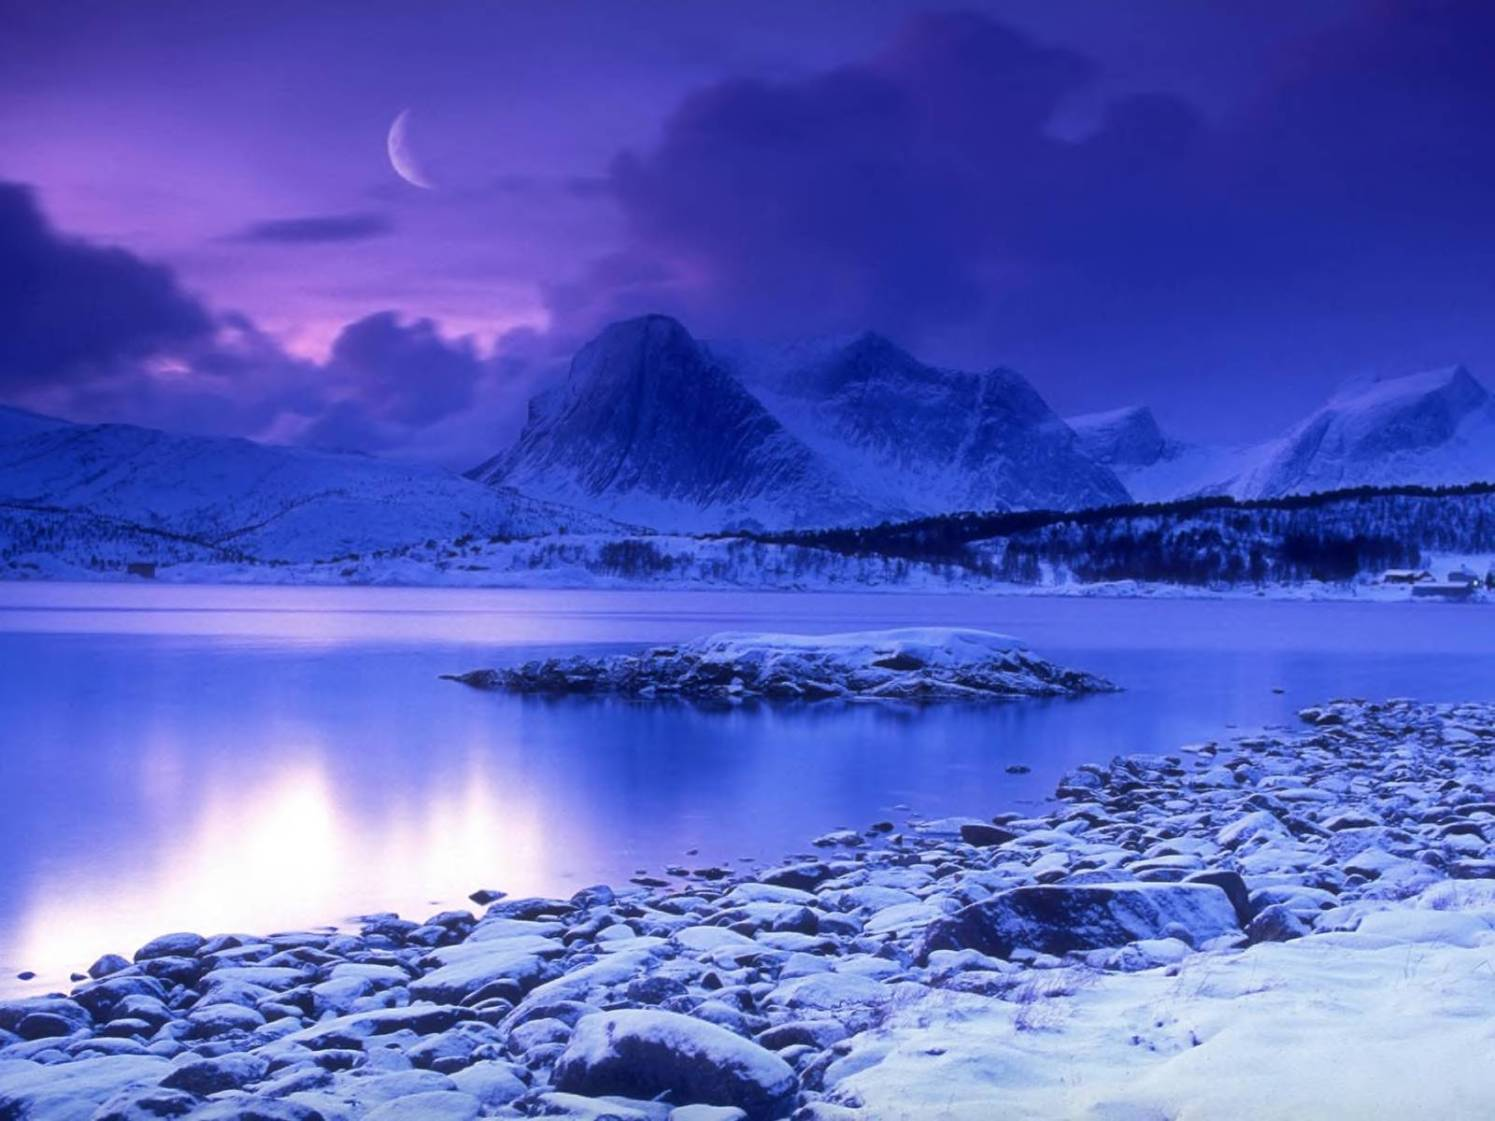 8589130497693-winter-moon-snow-wallpaper-hd